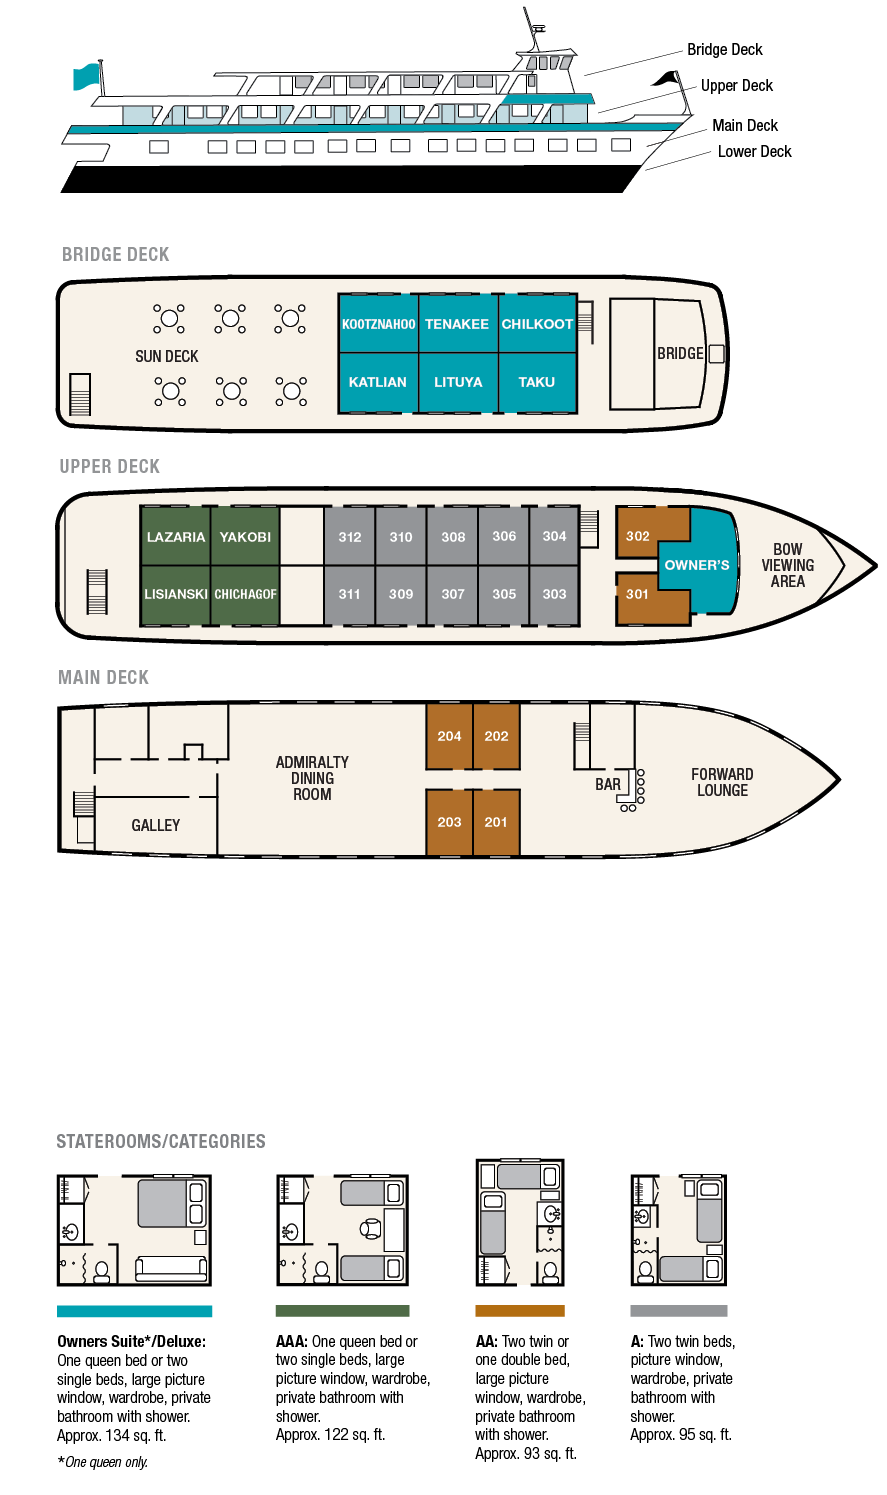 Cabin layout for  Admiralty Dream